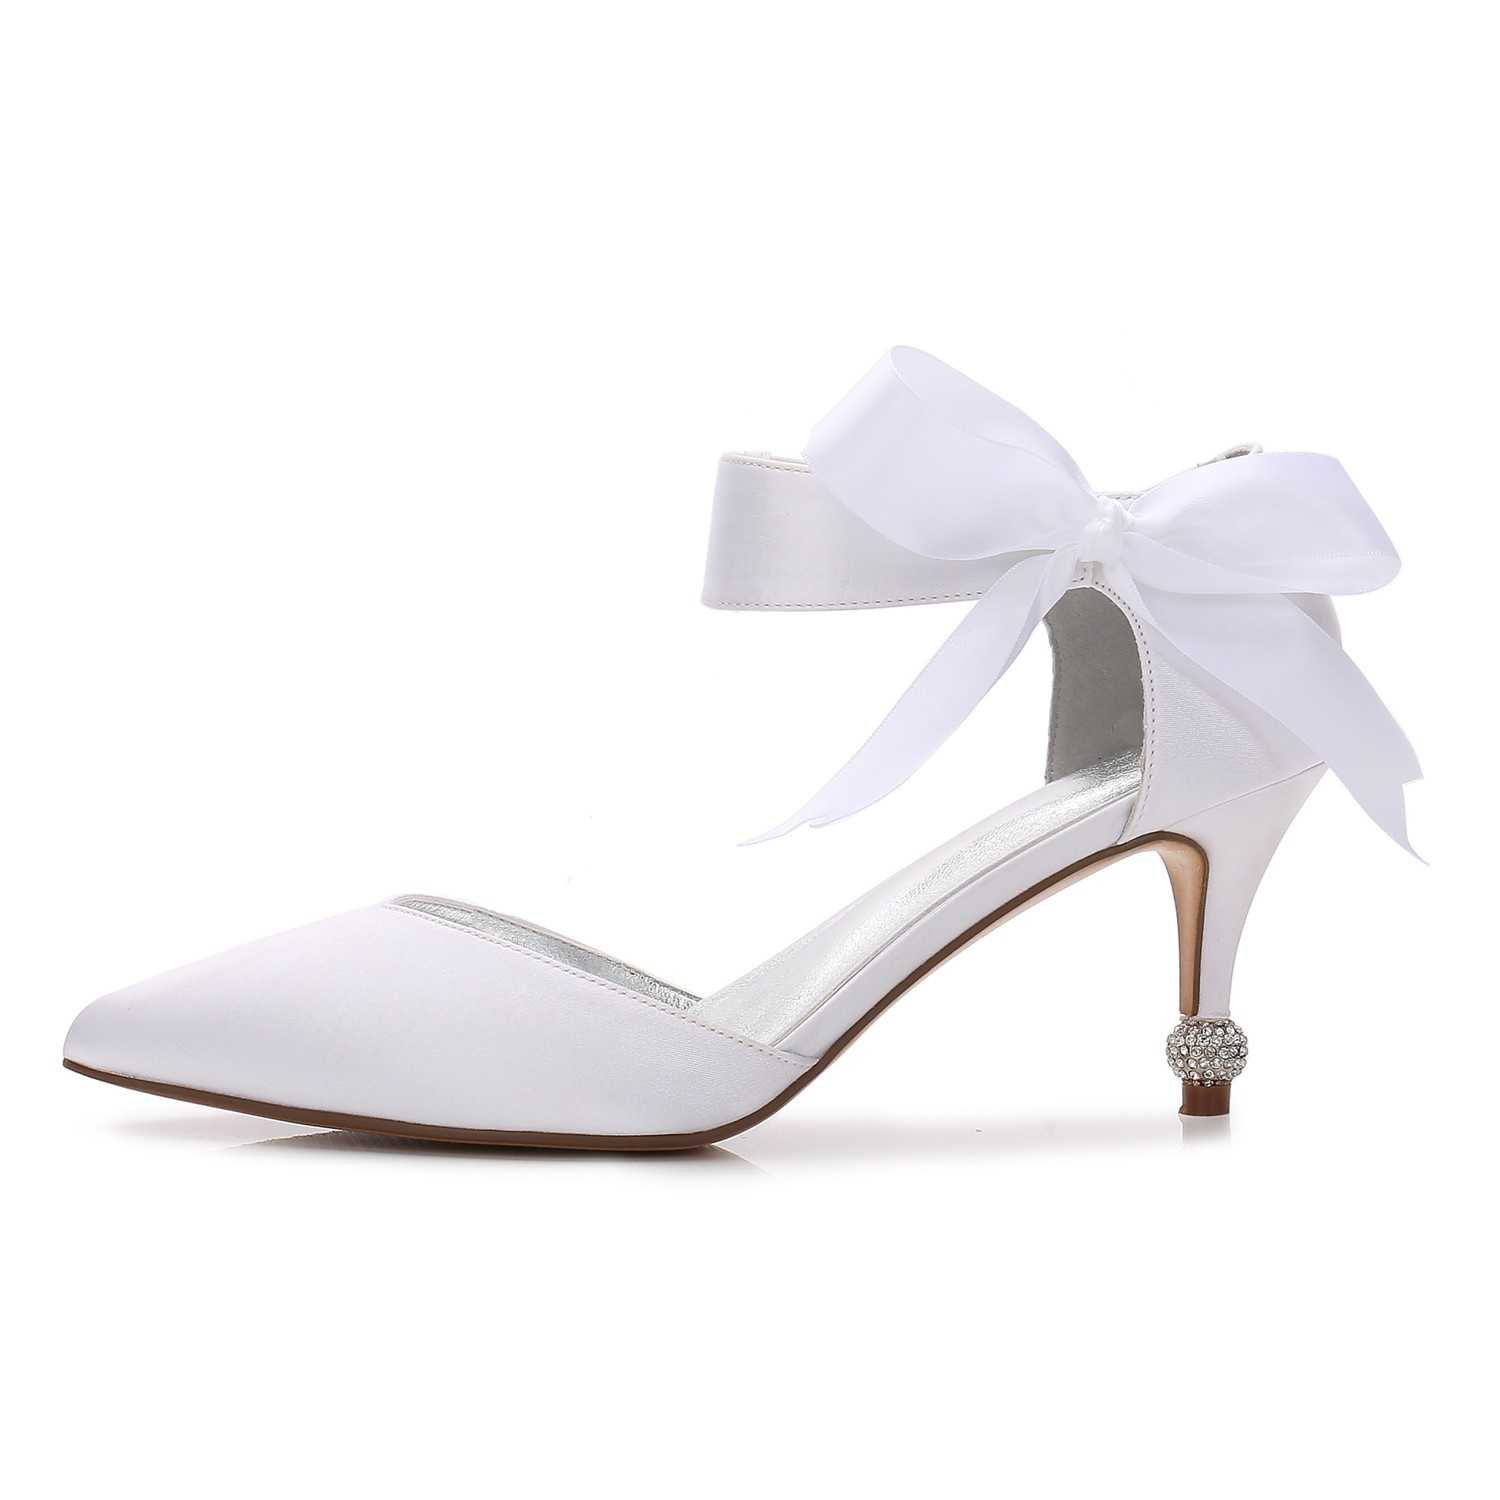 Pointed Toe Rhinestone Stiletto Heel Slip-On Bowknot Wedding Shoes